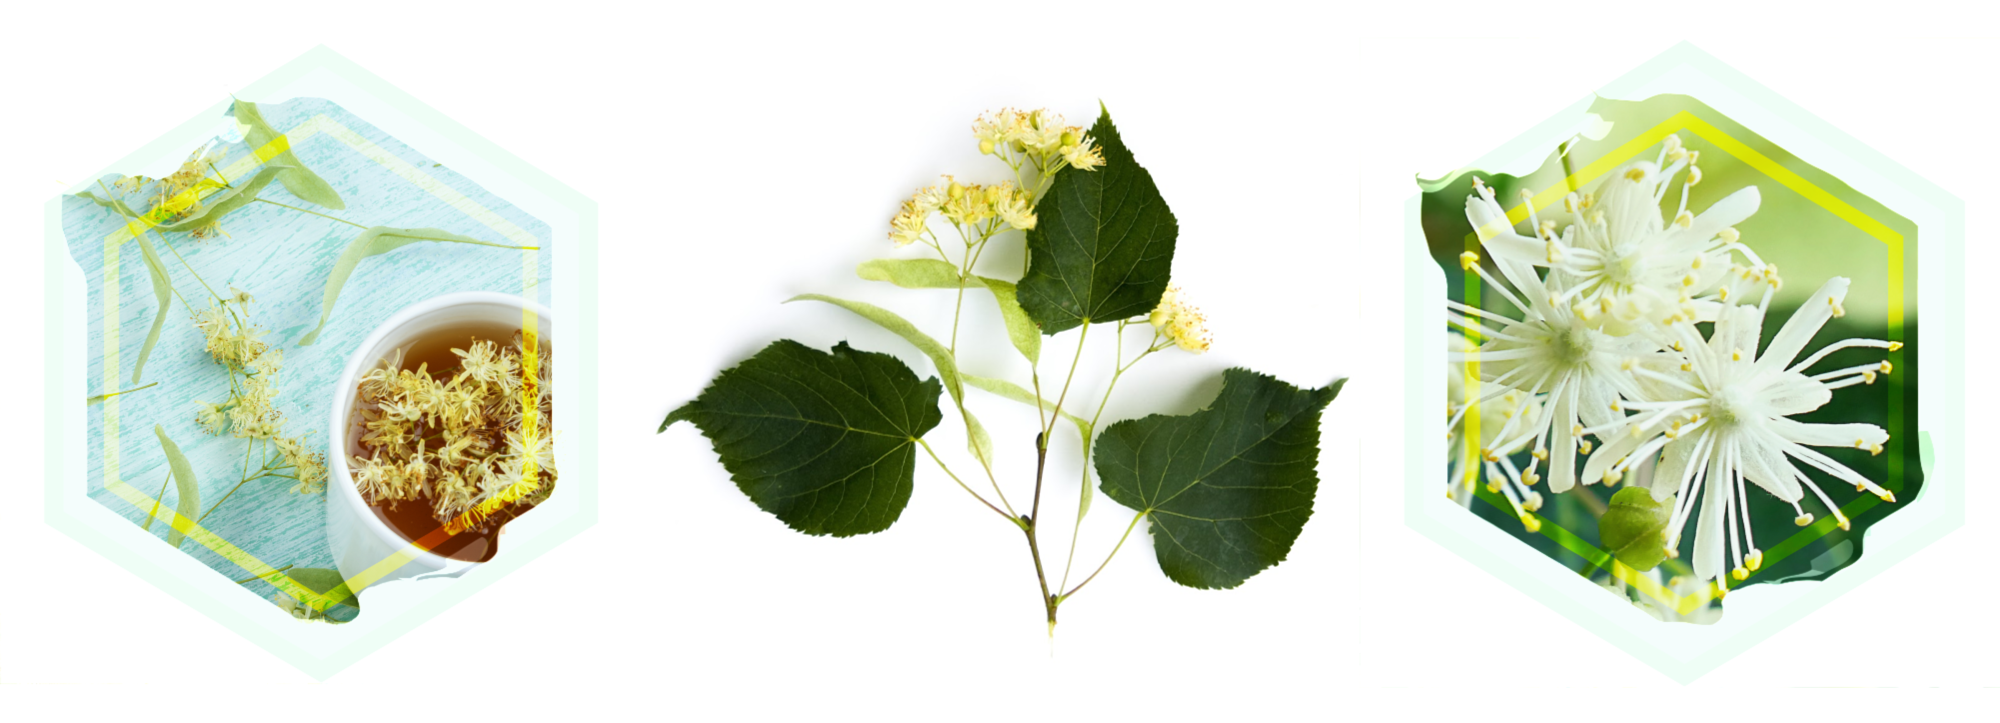 a graphic of a teal hexagon with a white cup of amber tea and graphic of a linden branch and flower cluster and the green hexagon with a few linden flowers in it